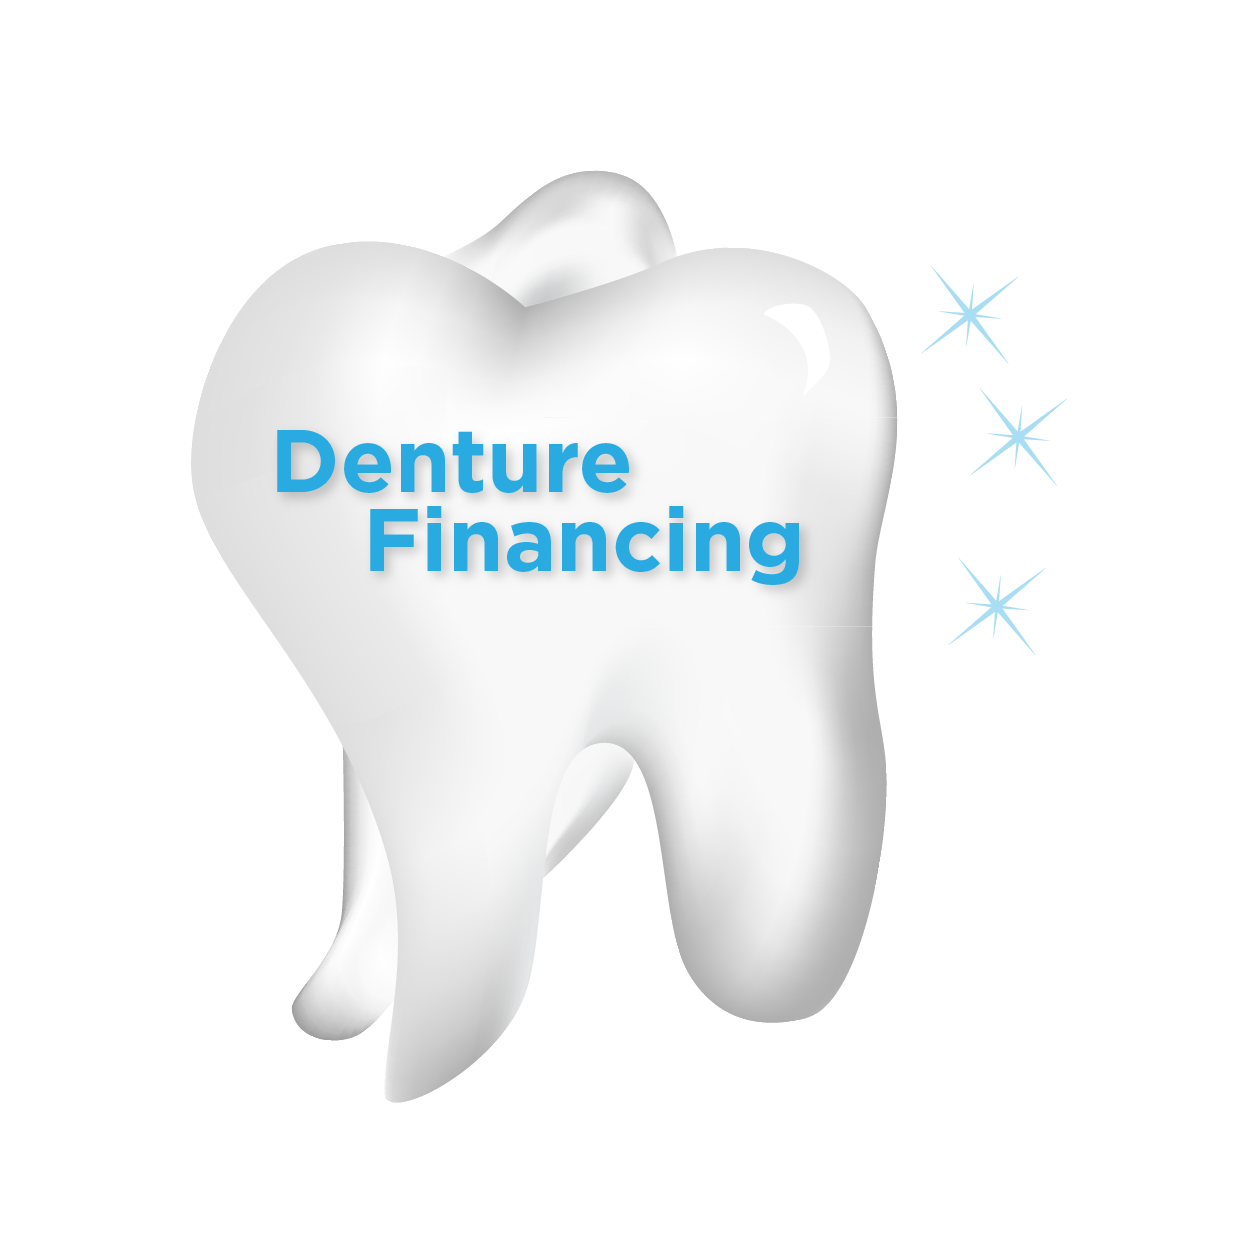 Get the Denture you really want - Denture Financing